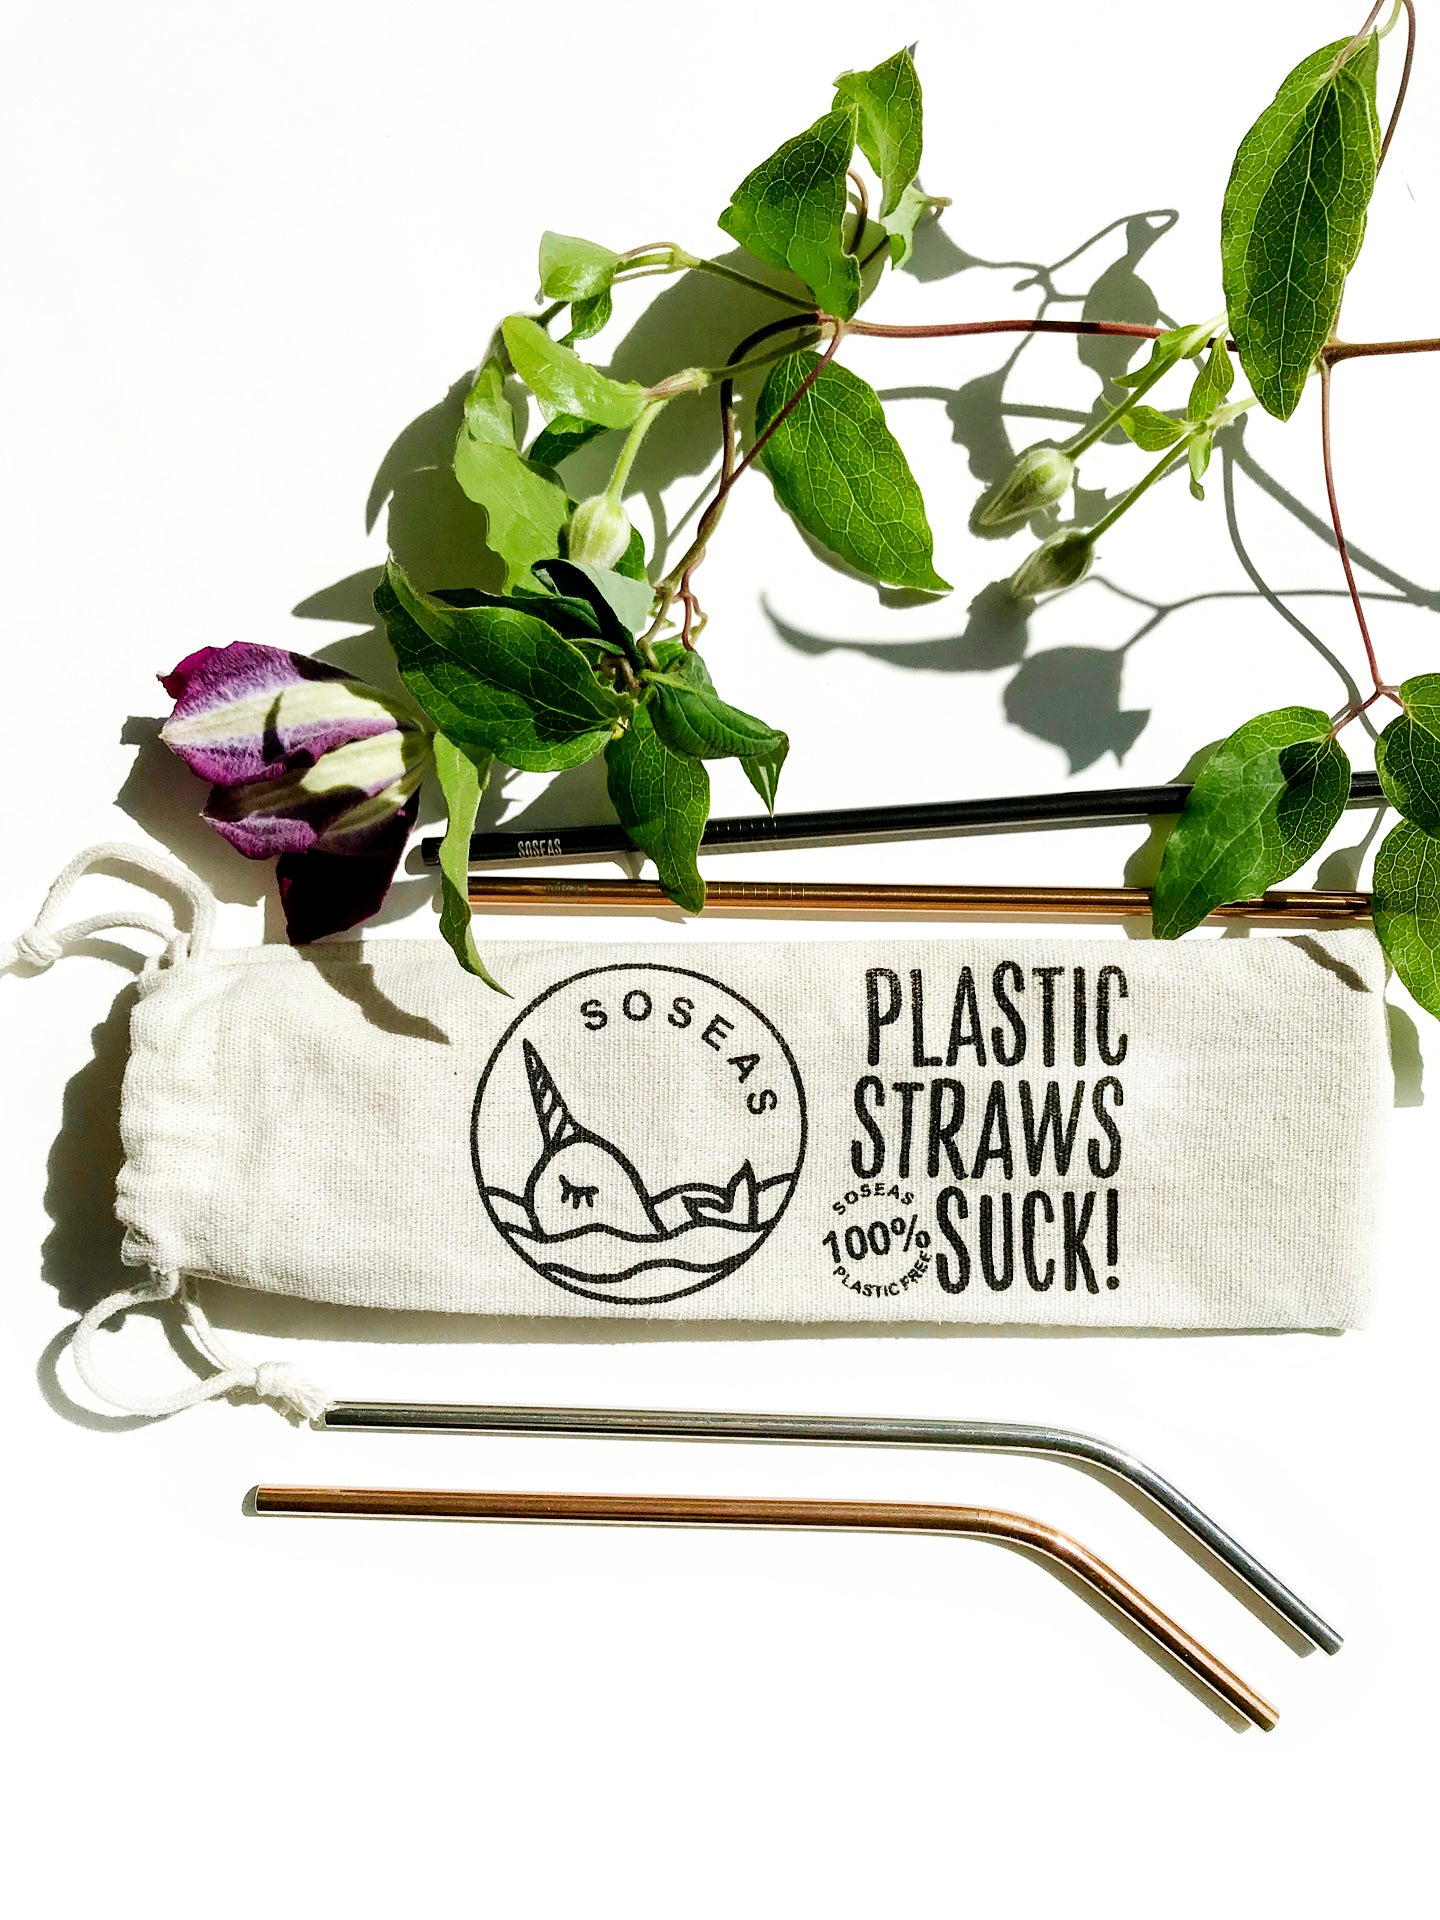 Reusable Metal Straws [8 Pack] With Linen Carry Case & Cotton Cleaners